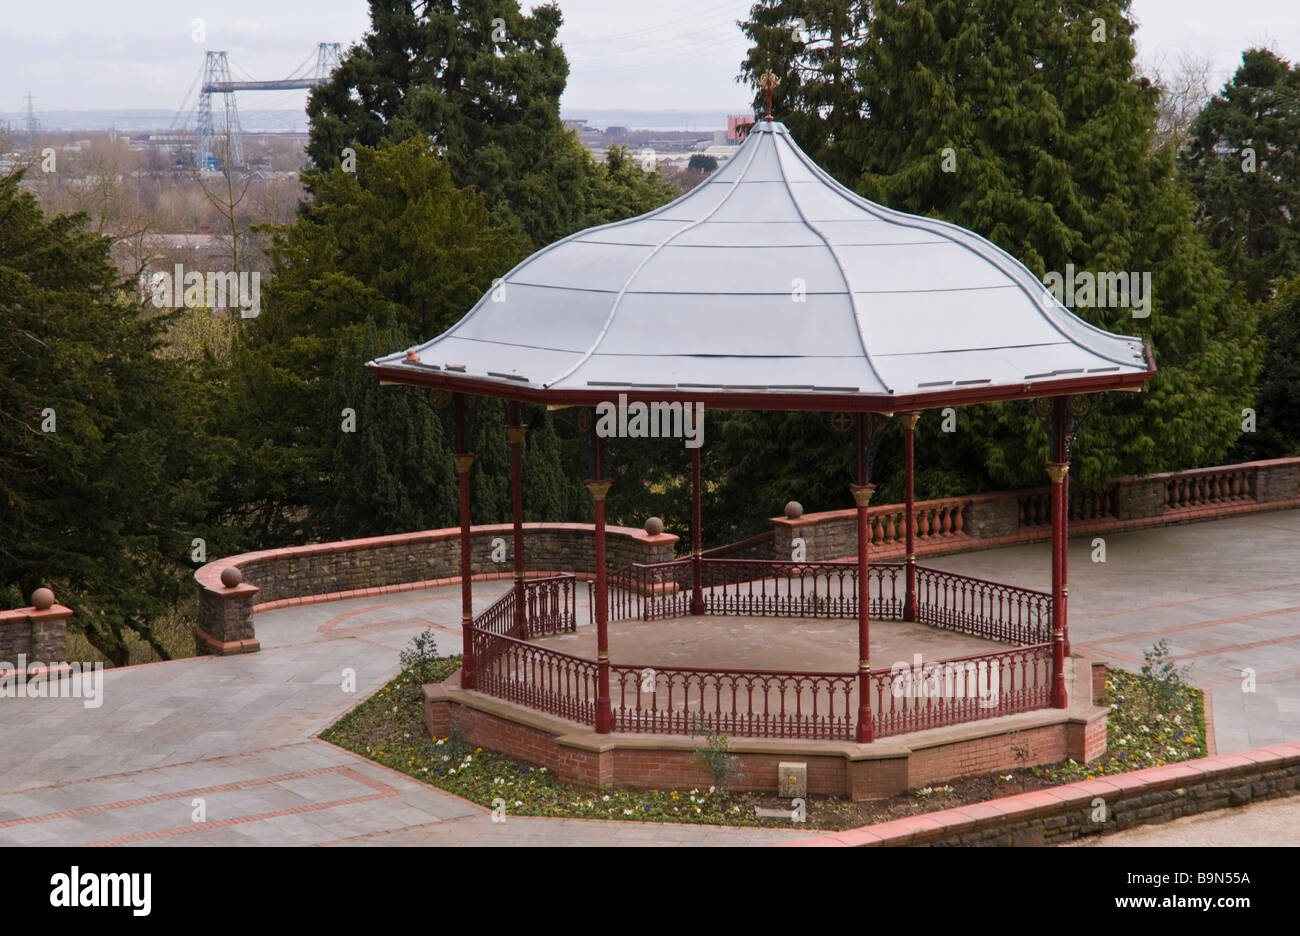 Bandstand in Belle Vue park Victorian public park in Newport South Wales UK - Stock Image